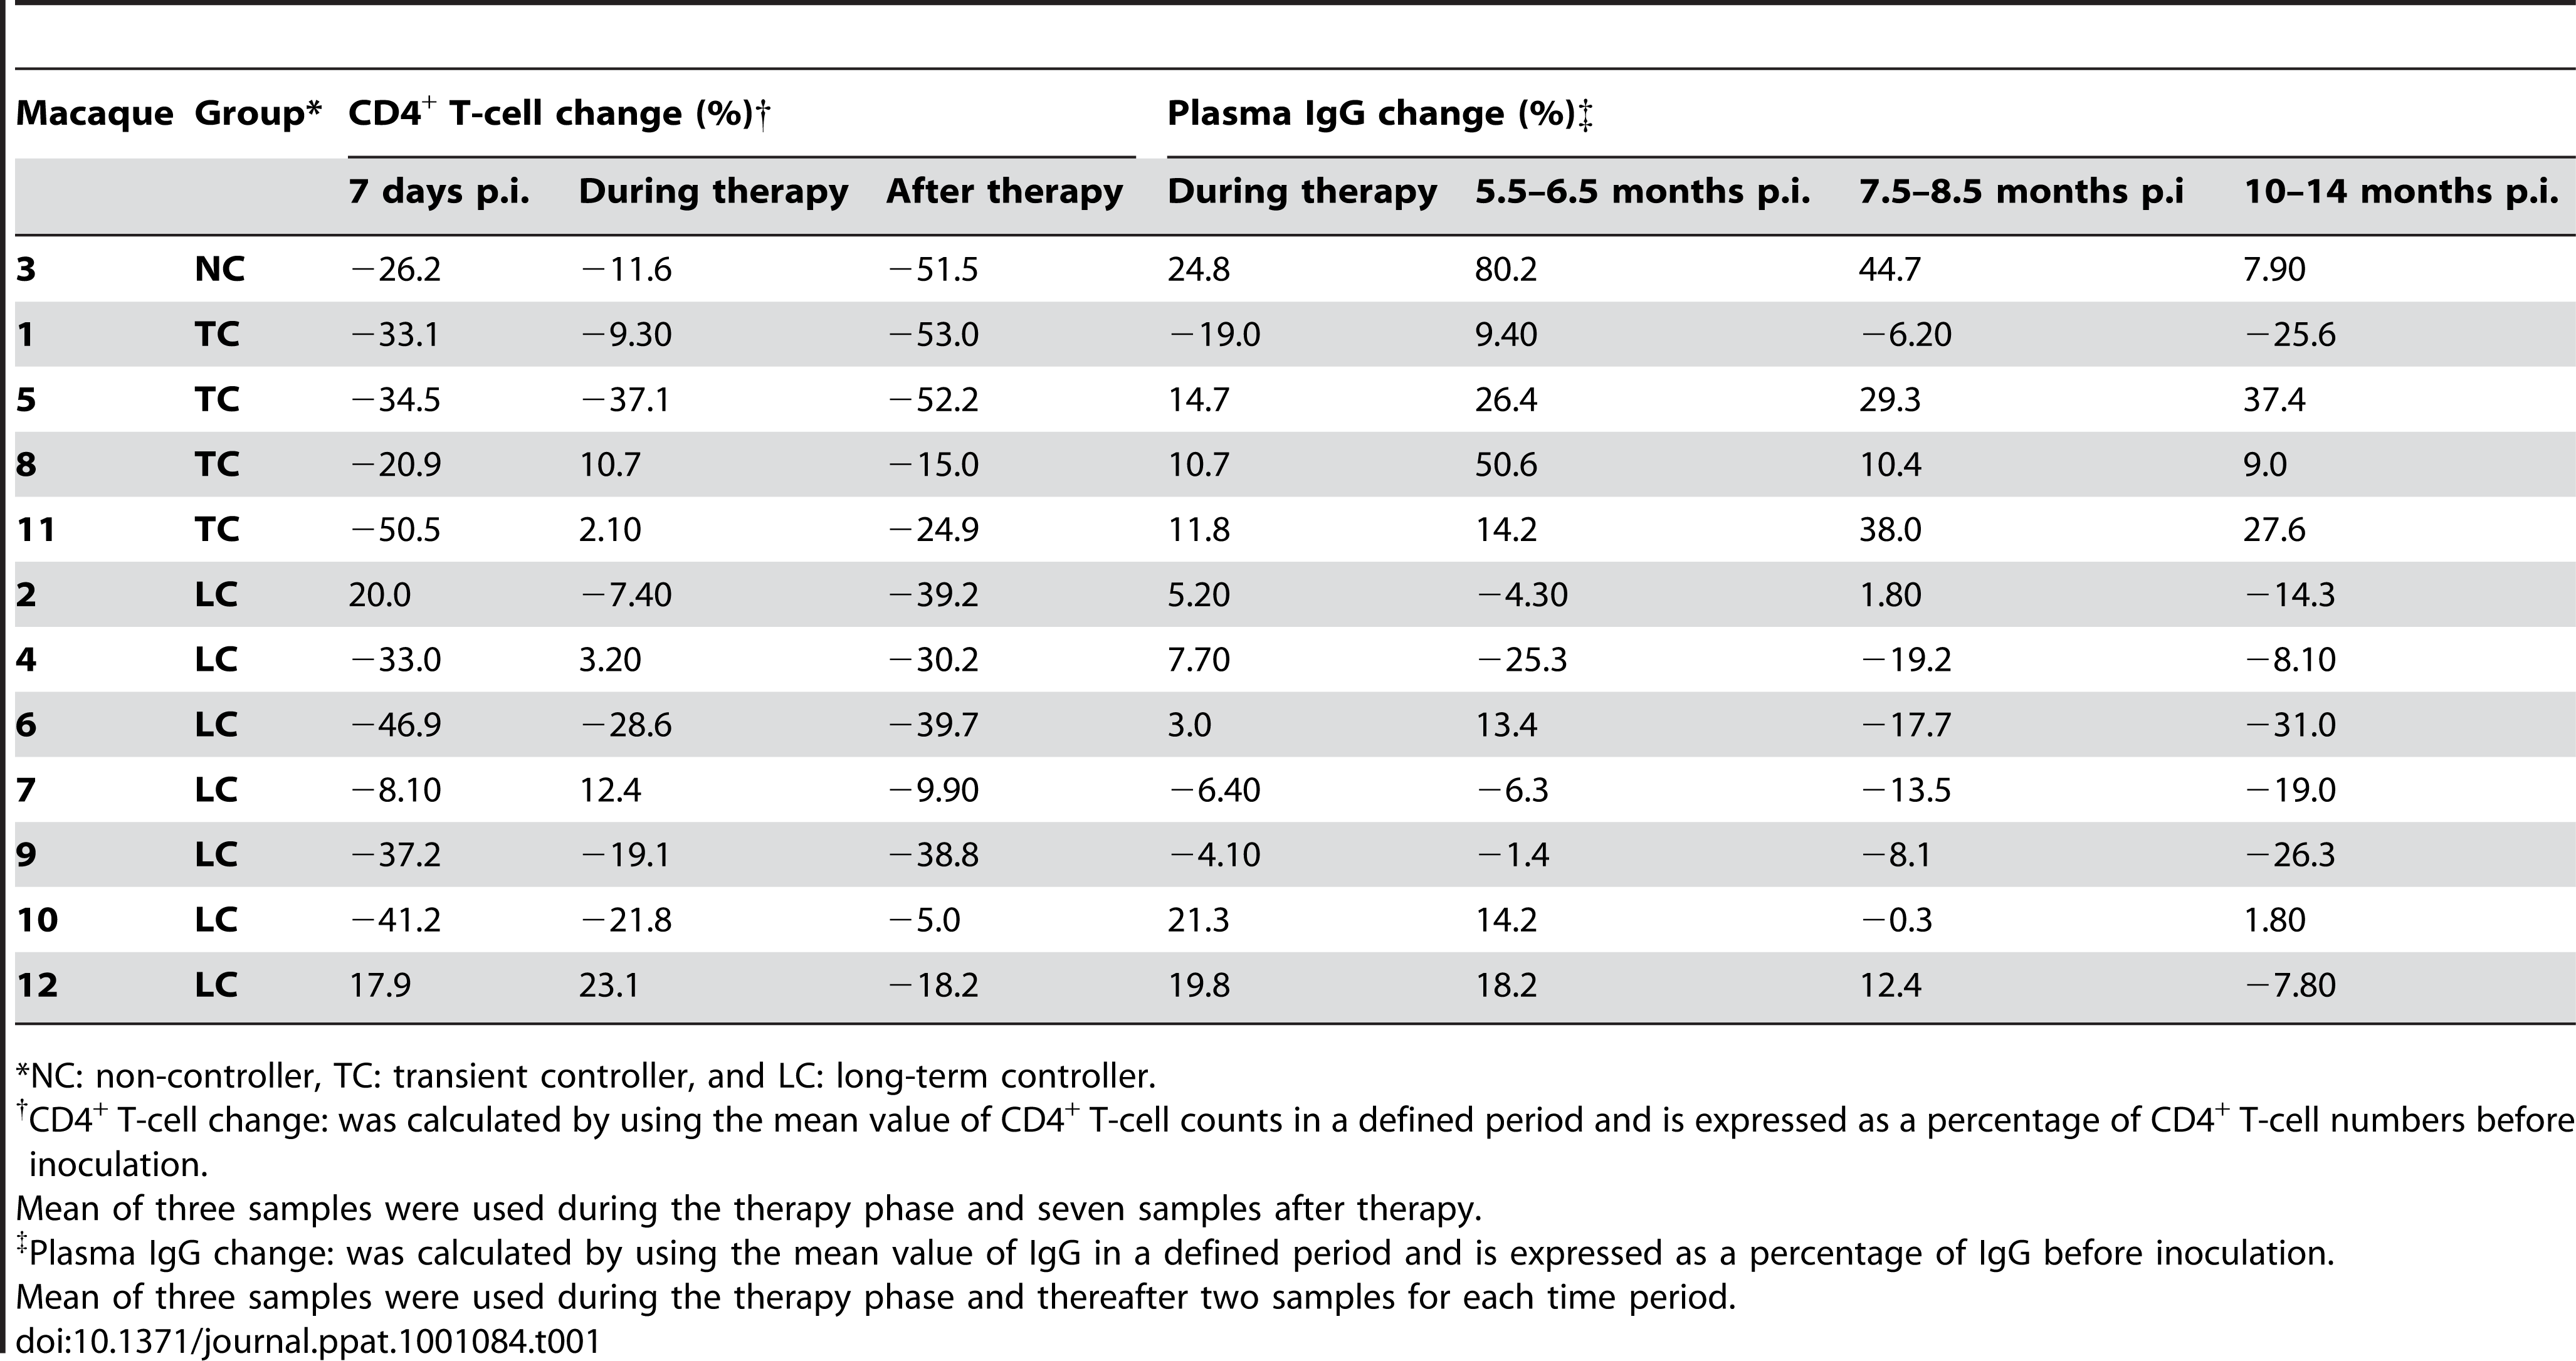 CD4<sup>+</sup> T-cell changes and IgG content in plasma over time.